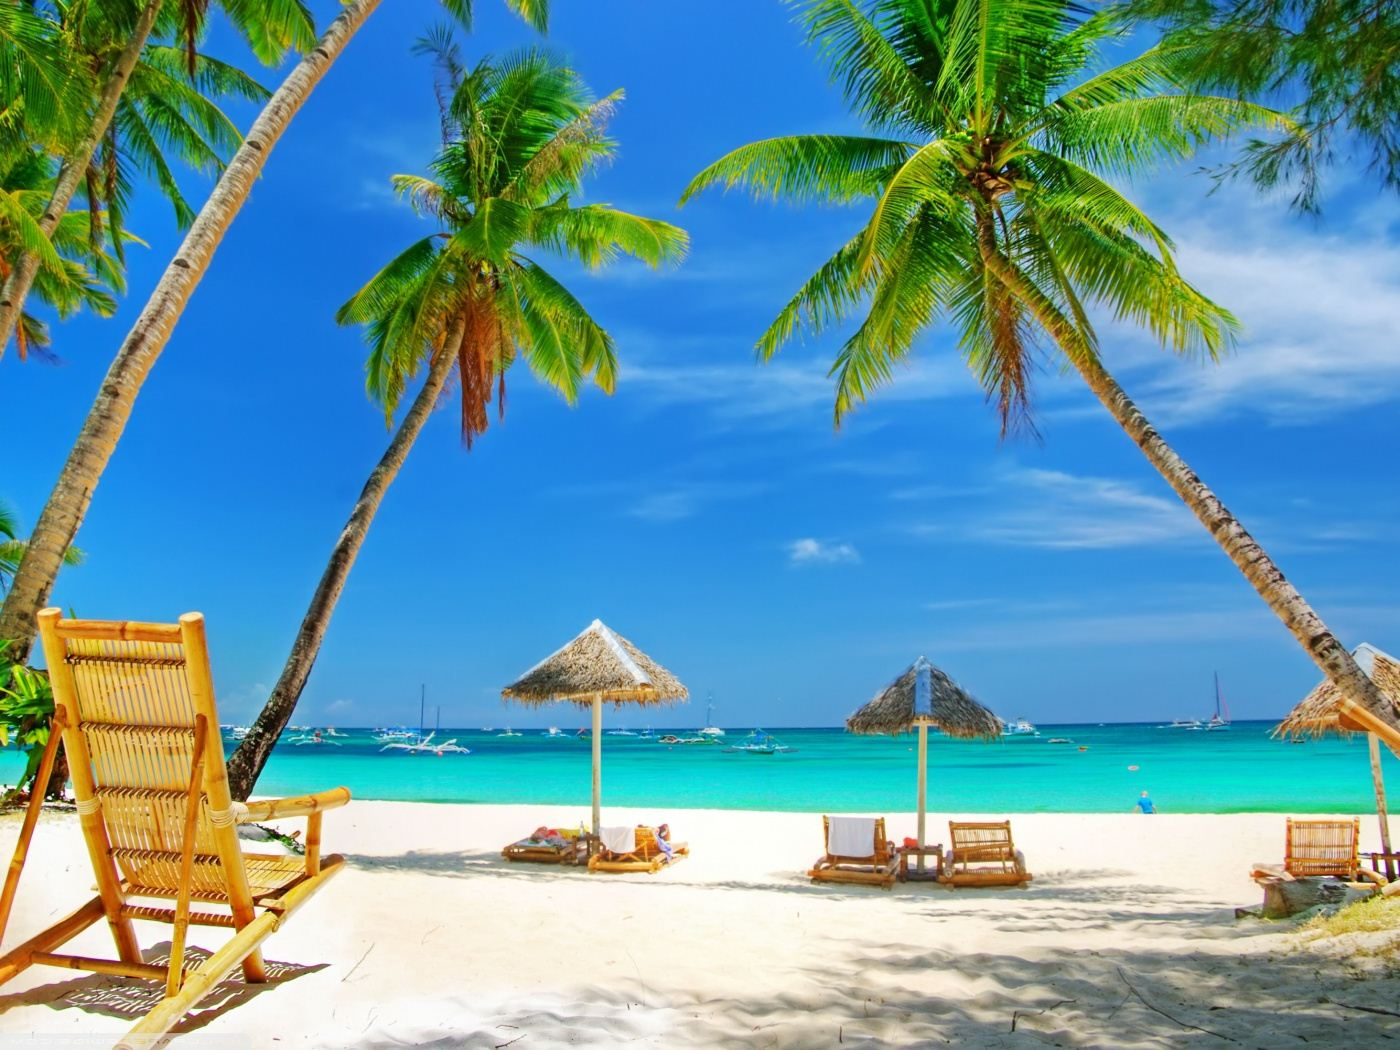 Hd Tropical Island Beach Paradise Wallpapers And Backgrounds: Tropical Paradise Beach